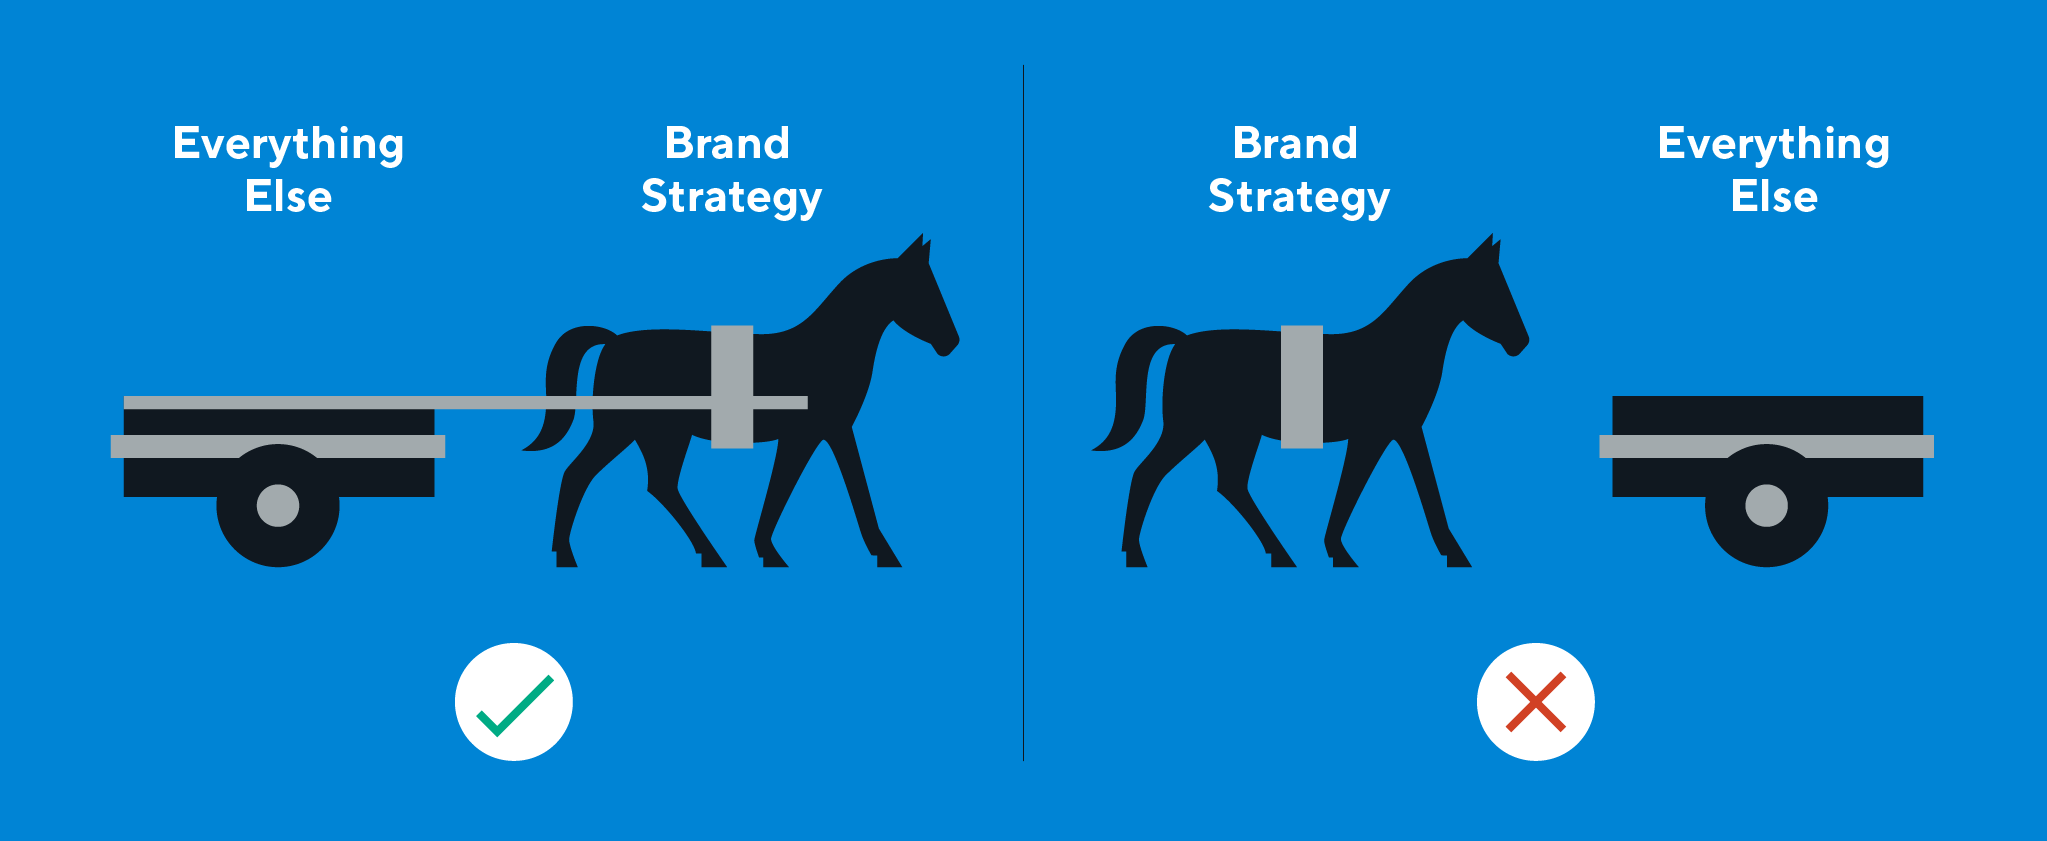 Illustration of brand strategy - don't put the cart before the horse